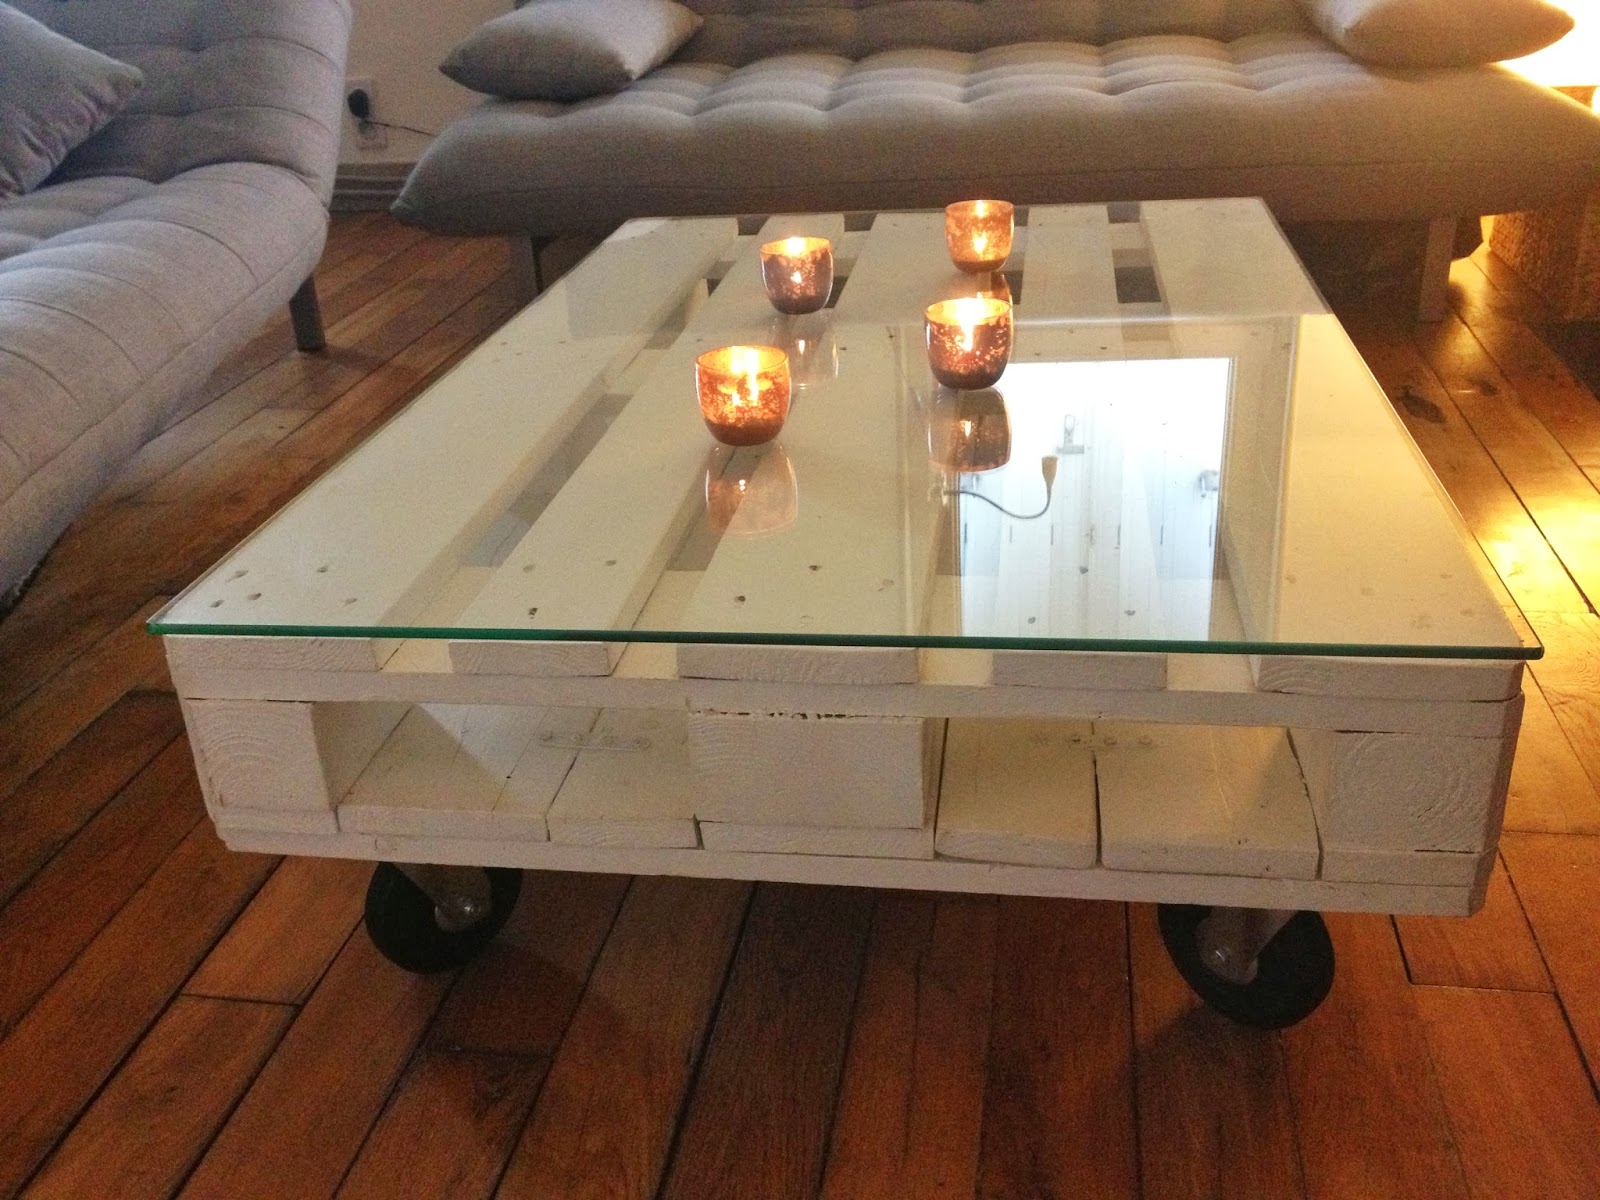 Diy une table basse en palette la clamartoise - Table basse fabrication maison ...